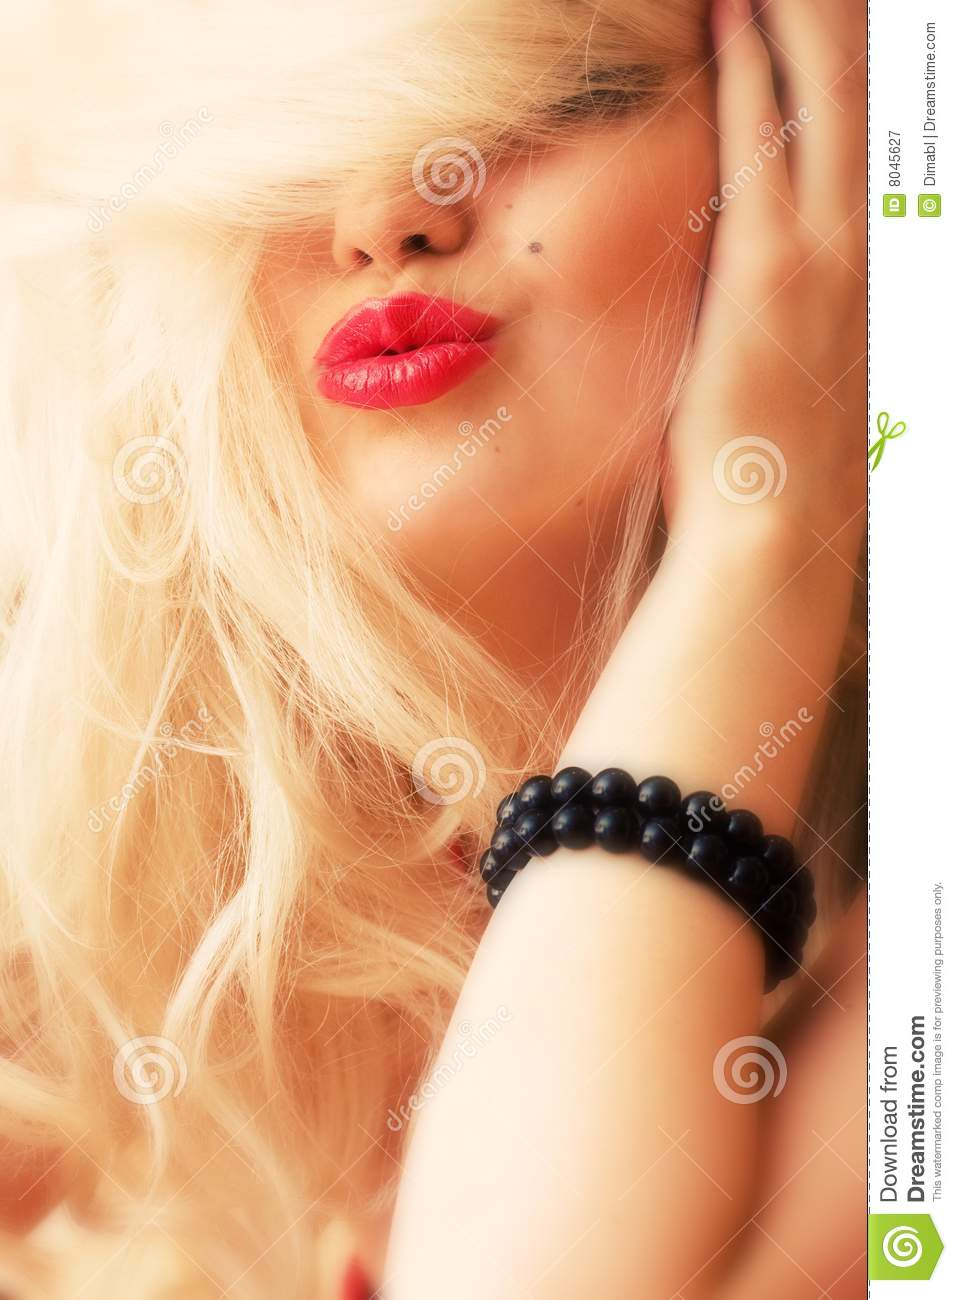 The blonde with red lips